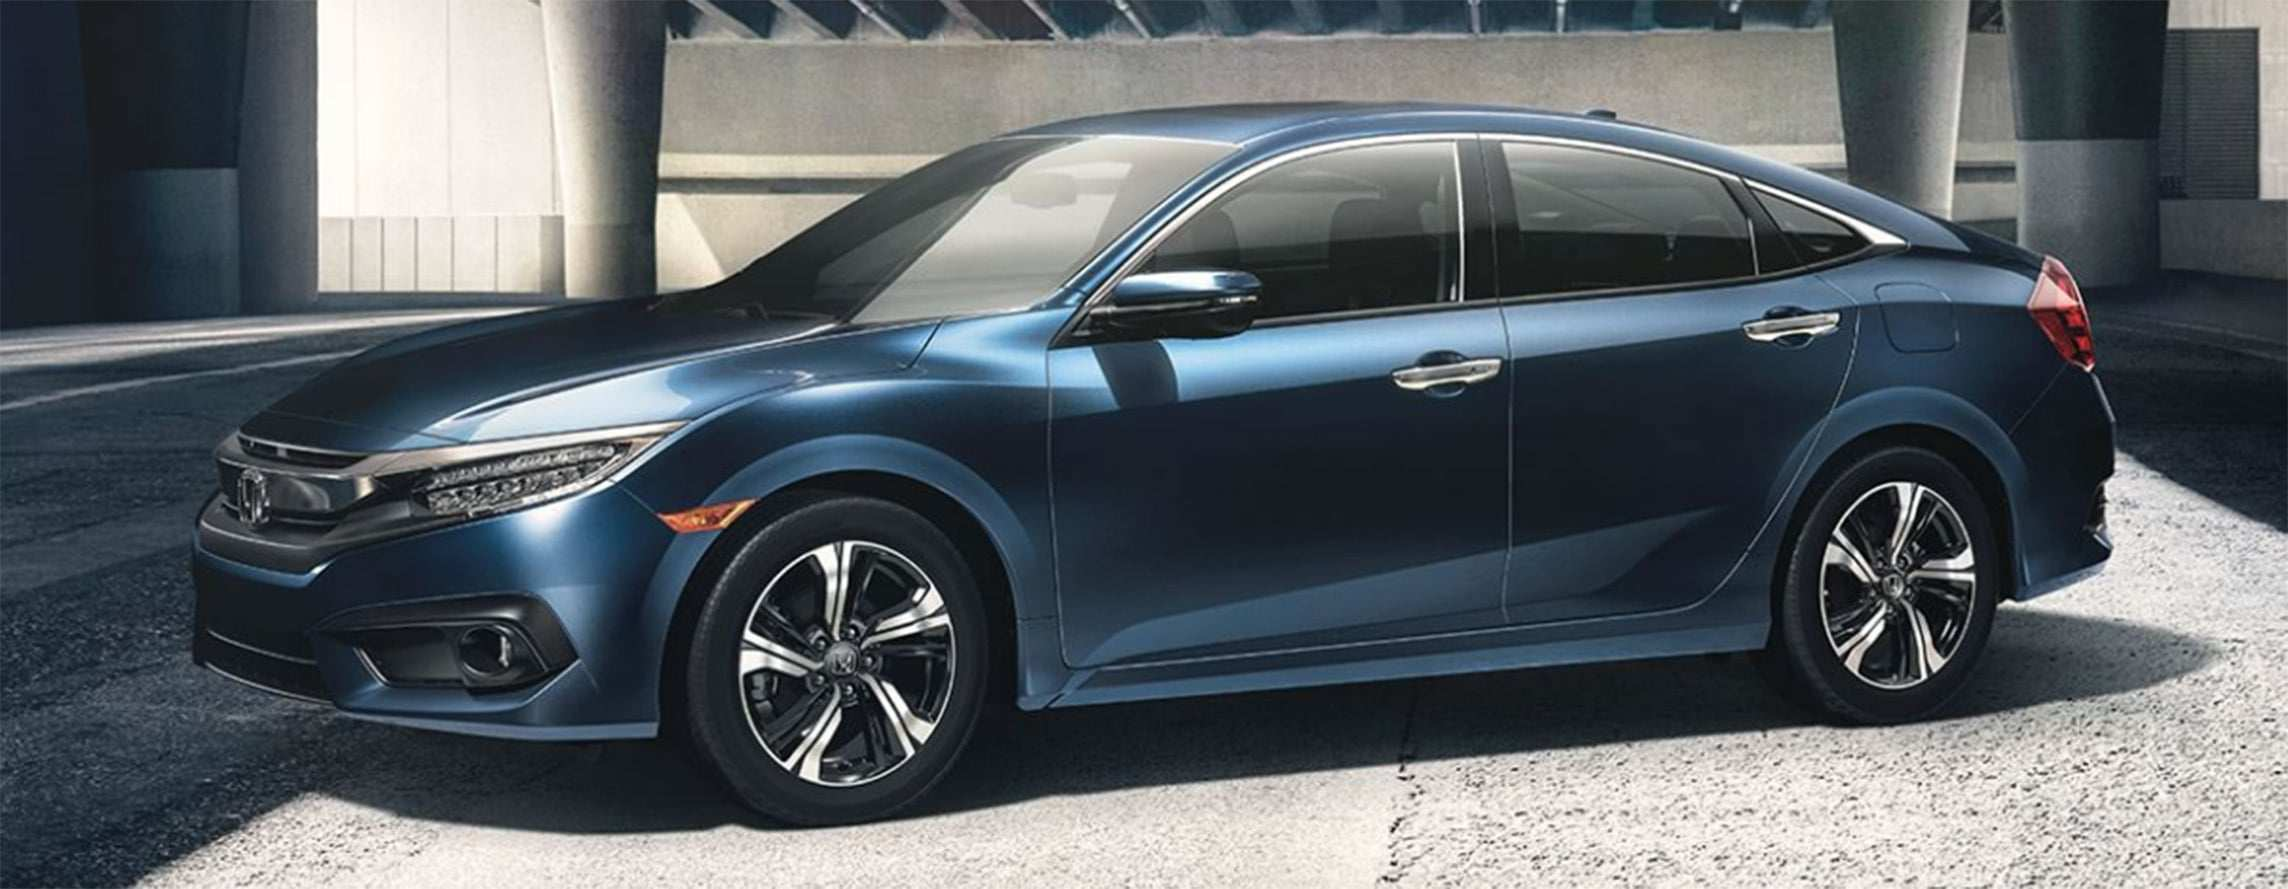 65 New Honda Civic 2020 Model In Pakistan Overview